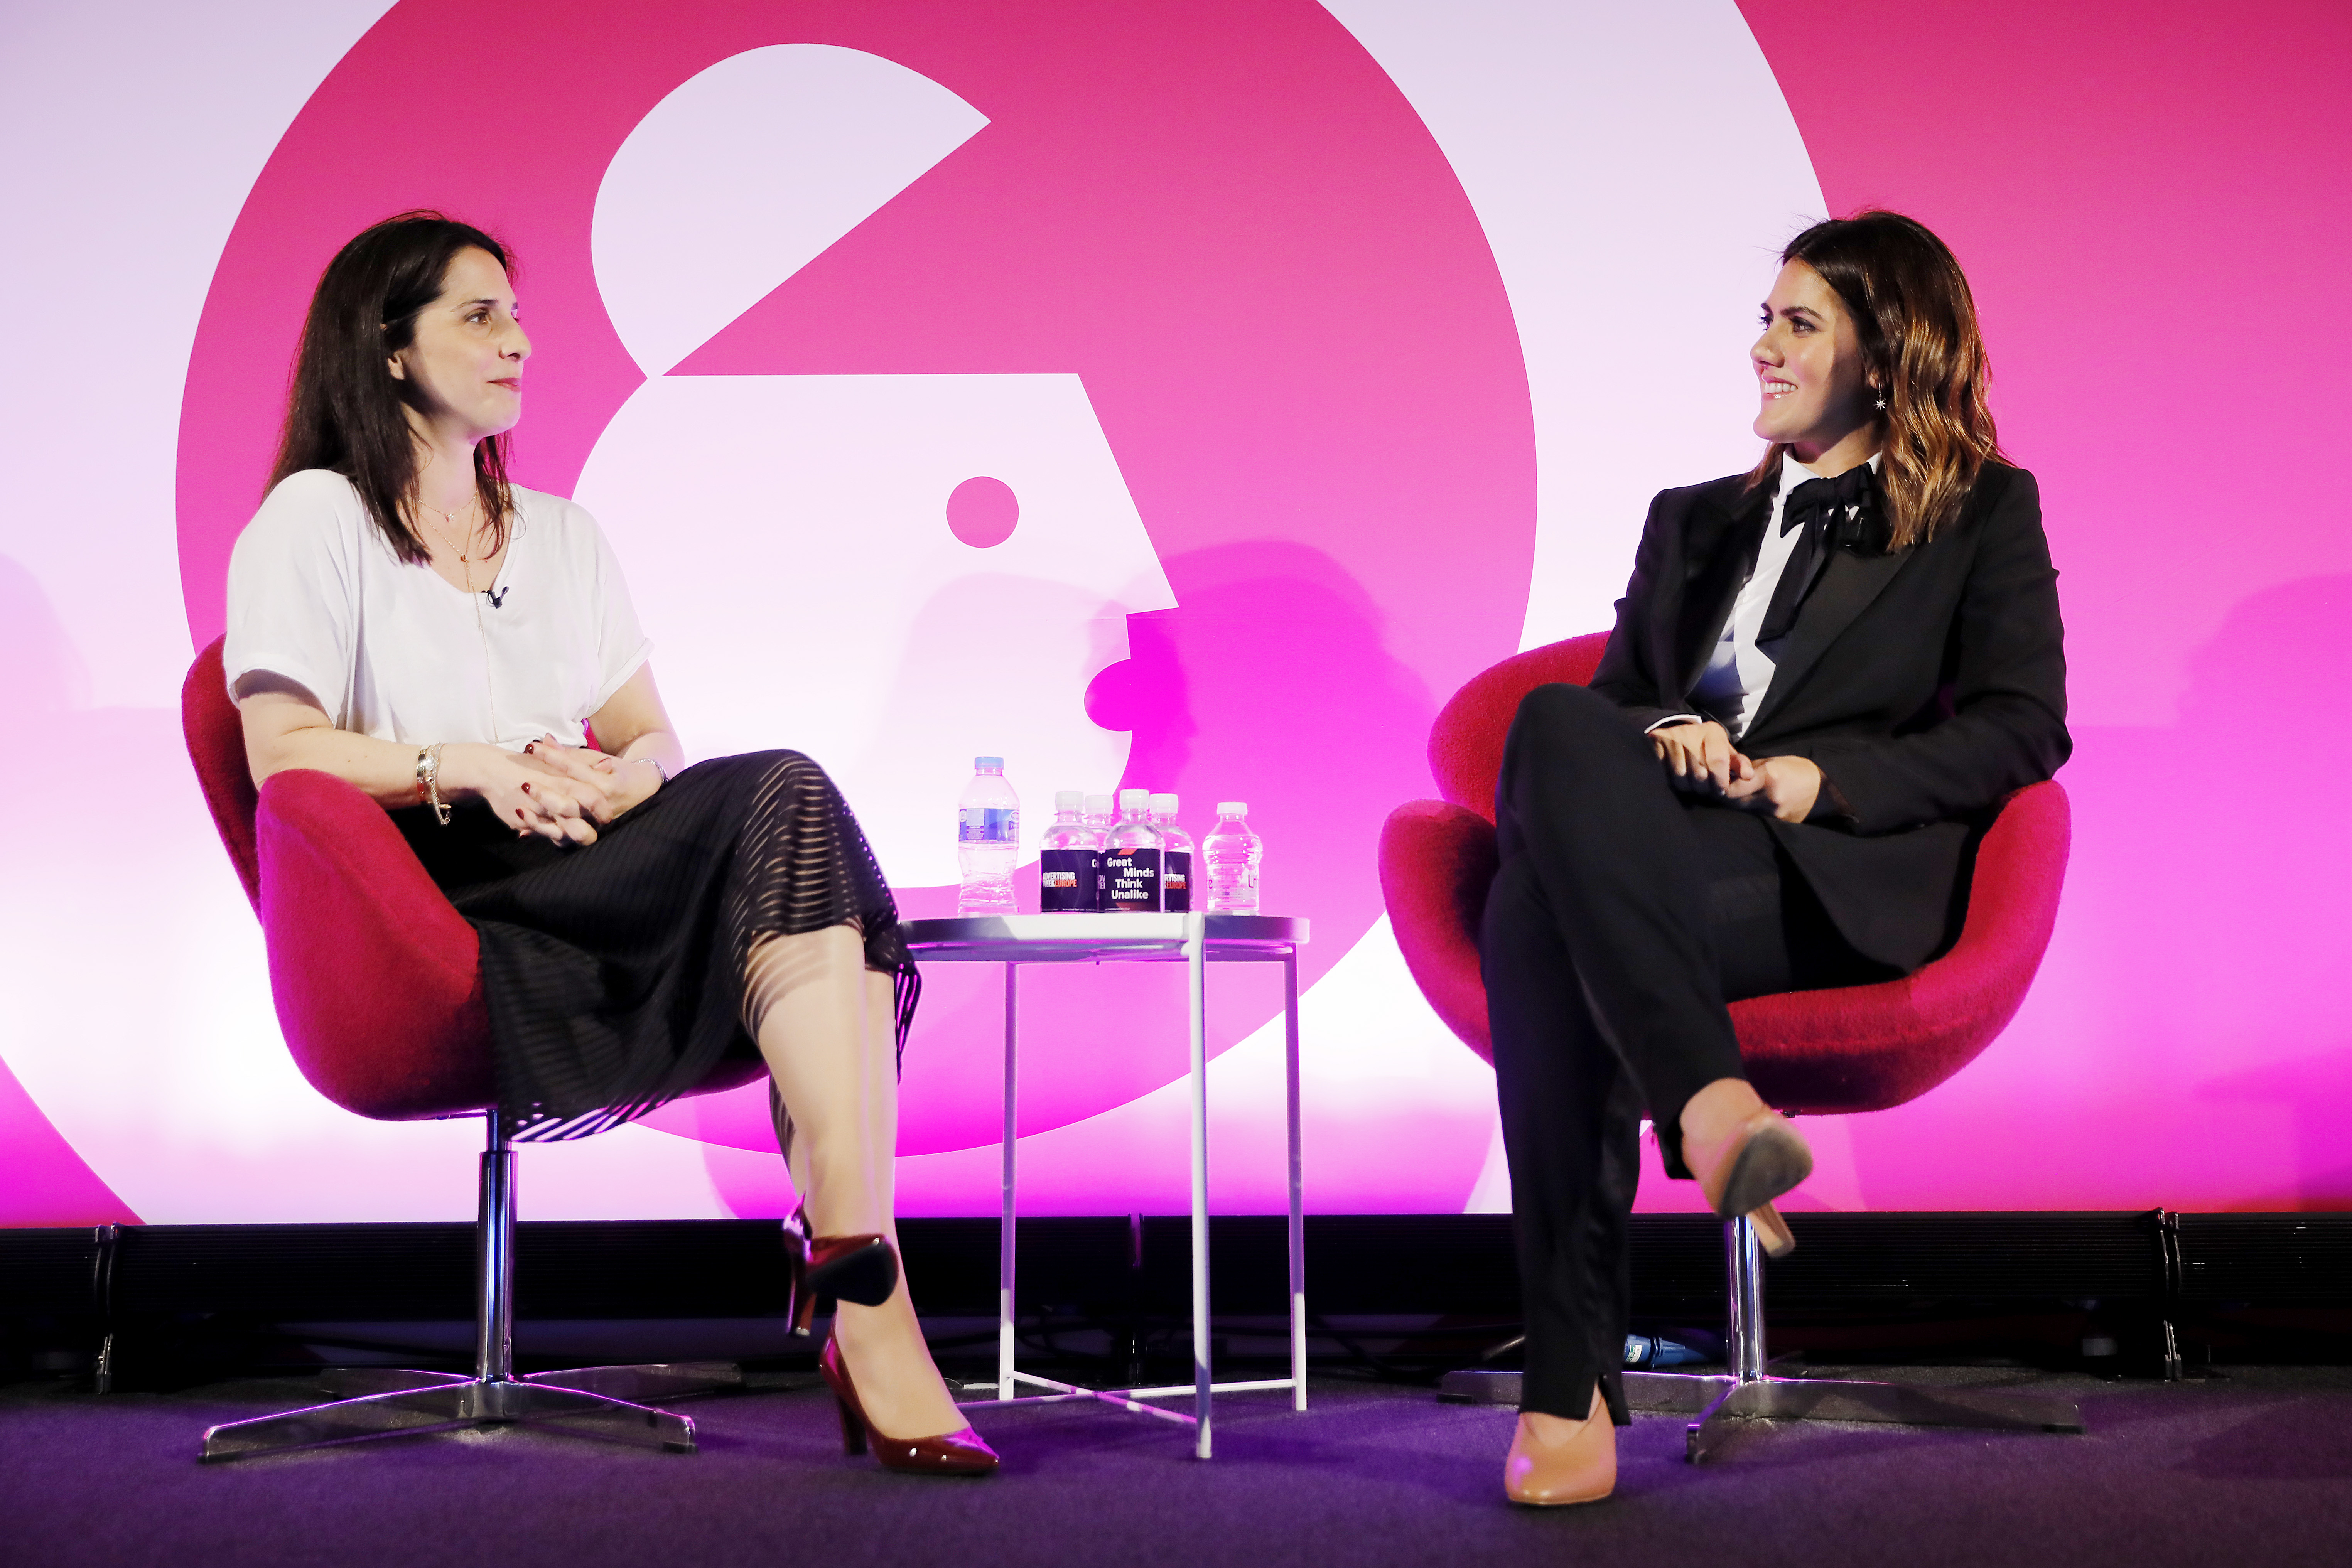 Discover How To Win With Cosmopolitan and Snapchat seminar, Advertising Week Europe 2017, Fast Company Stage, Picturehouse Central, London, UK - 20 Mar 2017